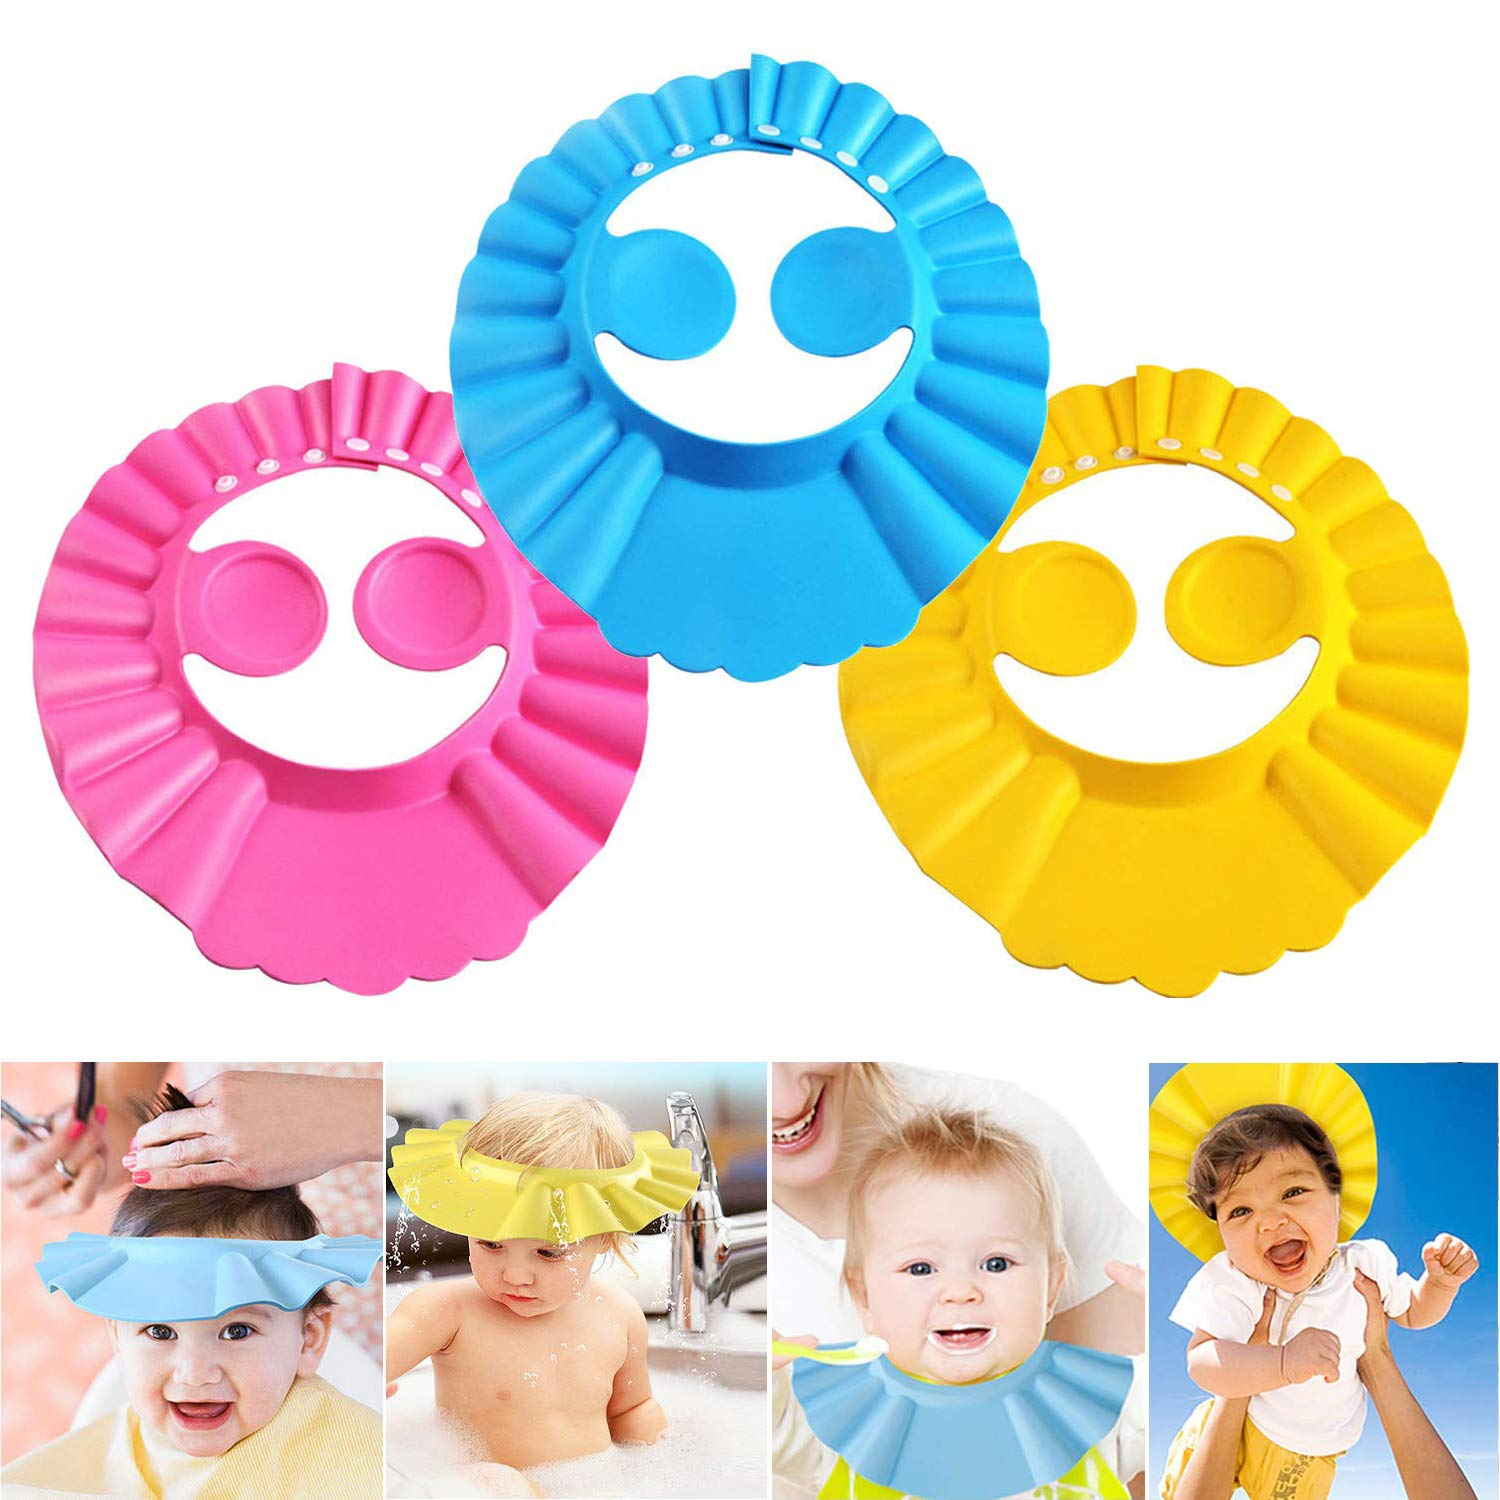 Baby Shower Cap Bathing Cap, Soft Adjustable Visor Hat for Shampoo Shower, Bathing Shampoo Hat with Ear Protection, Shower Cap Protect Your Baby Eyes for Toddler, Baby, Kids, Children